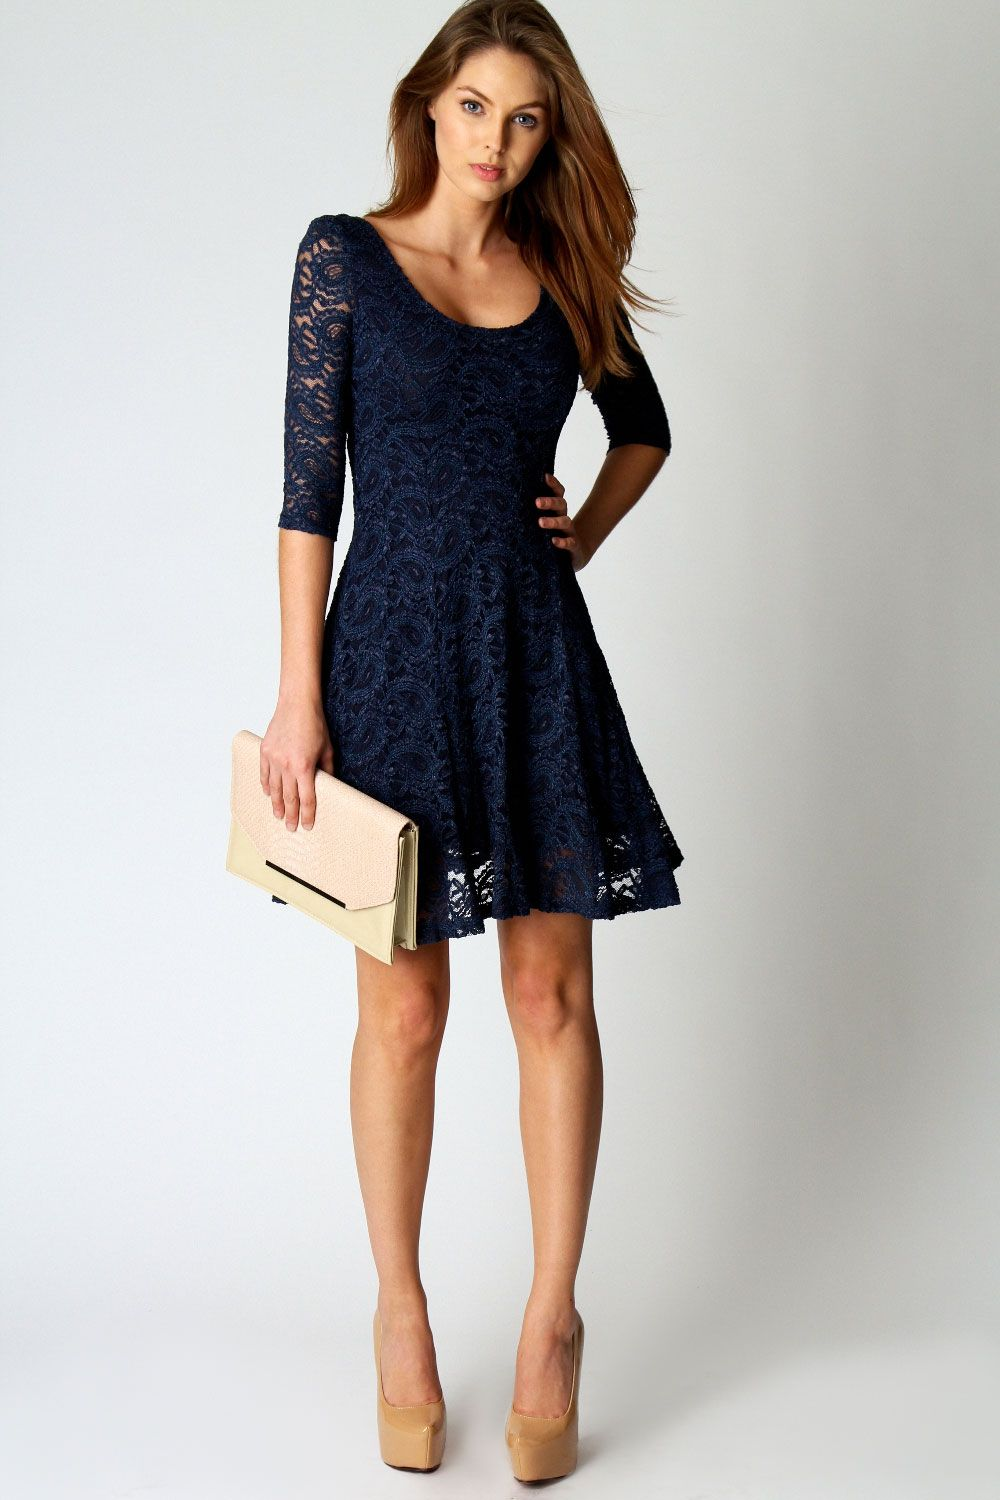 All Lace Cocktail Dress